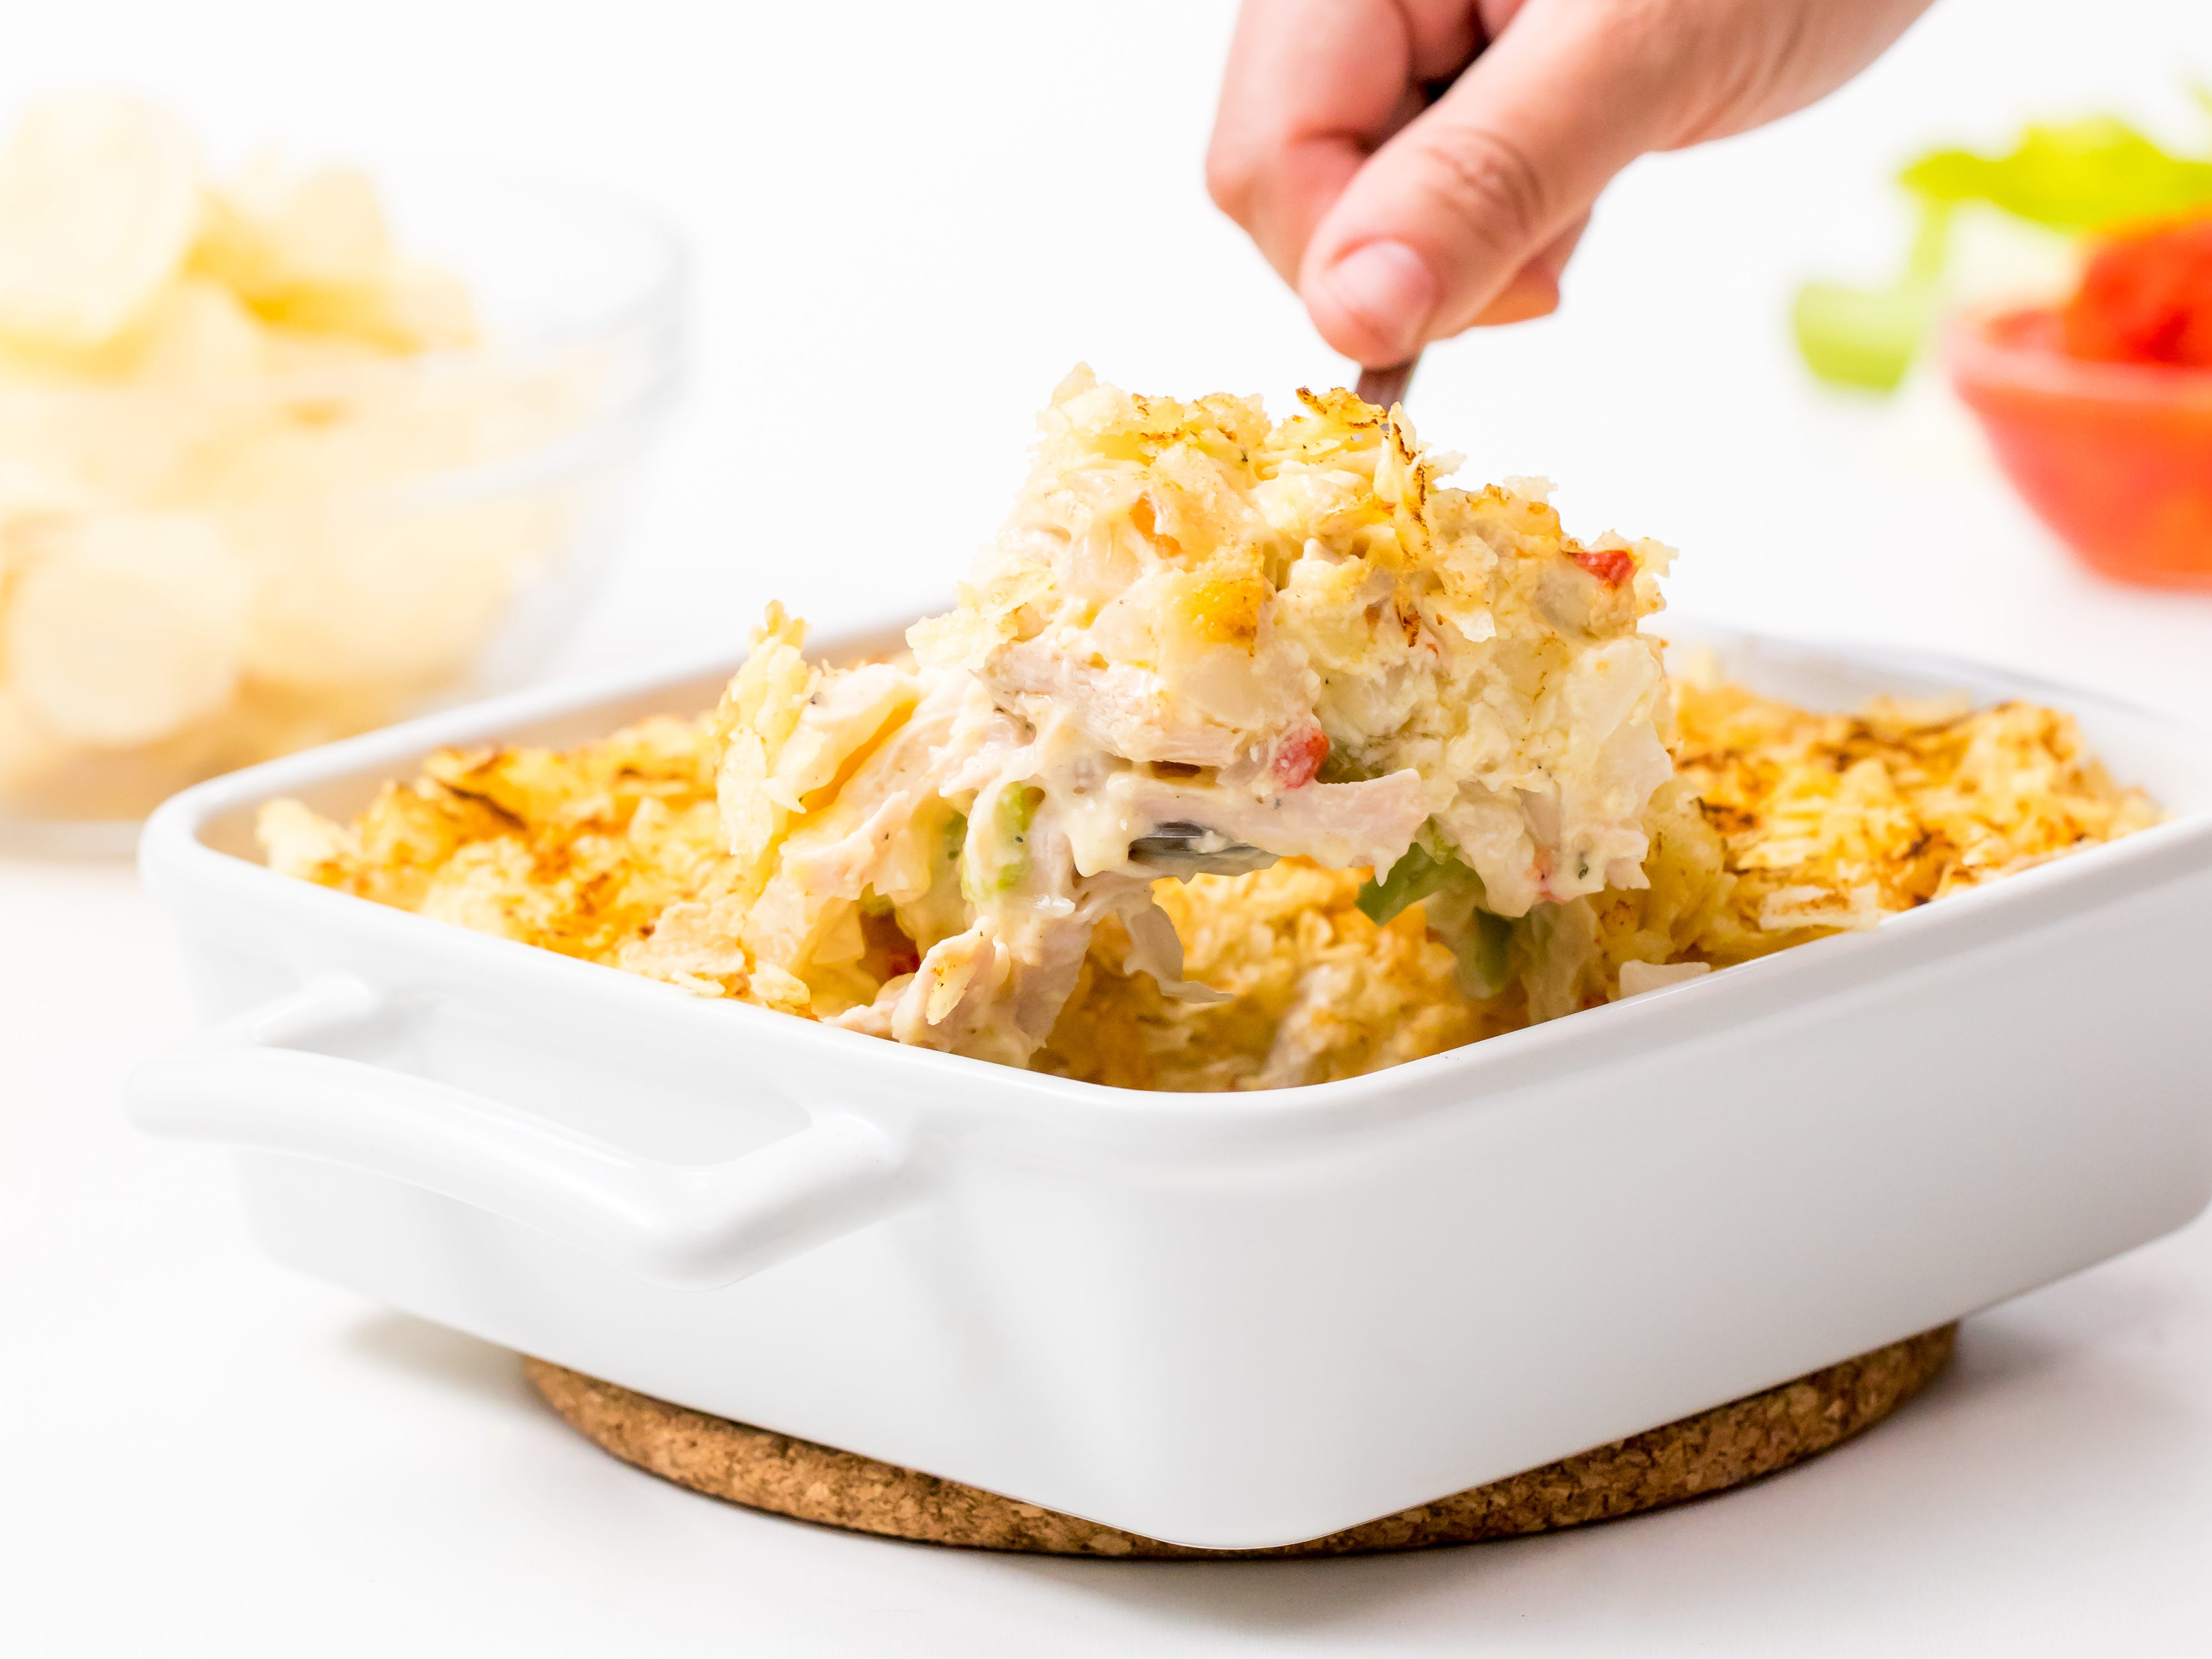 YouÕve roasted a beautiful turkey and enjoyed it the traditional way, with gravy, stuffing, mashed potatoes, the works. Great! Now itÕs time to get creative with all the leftovers. This leftover turkey casserole, inspired by Genius Kitchen, is a delicious start.